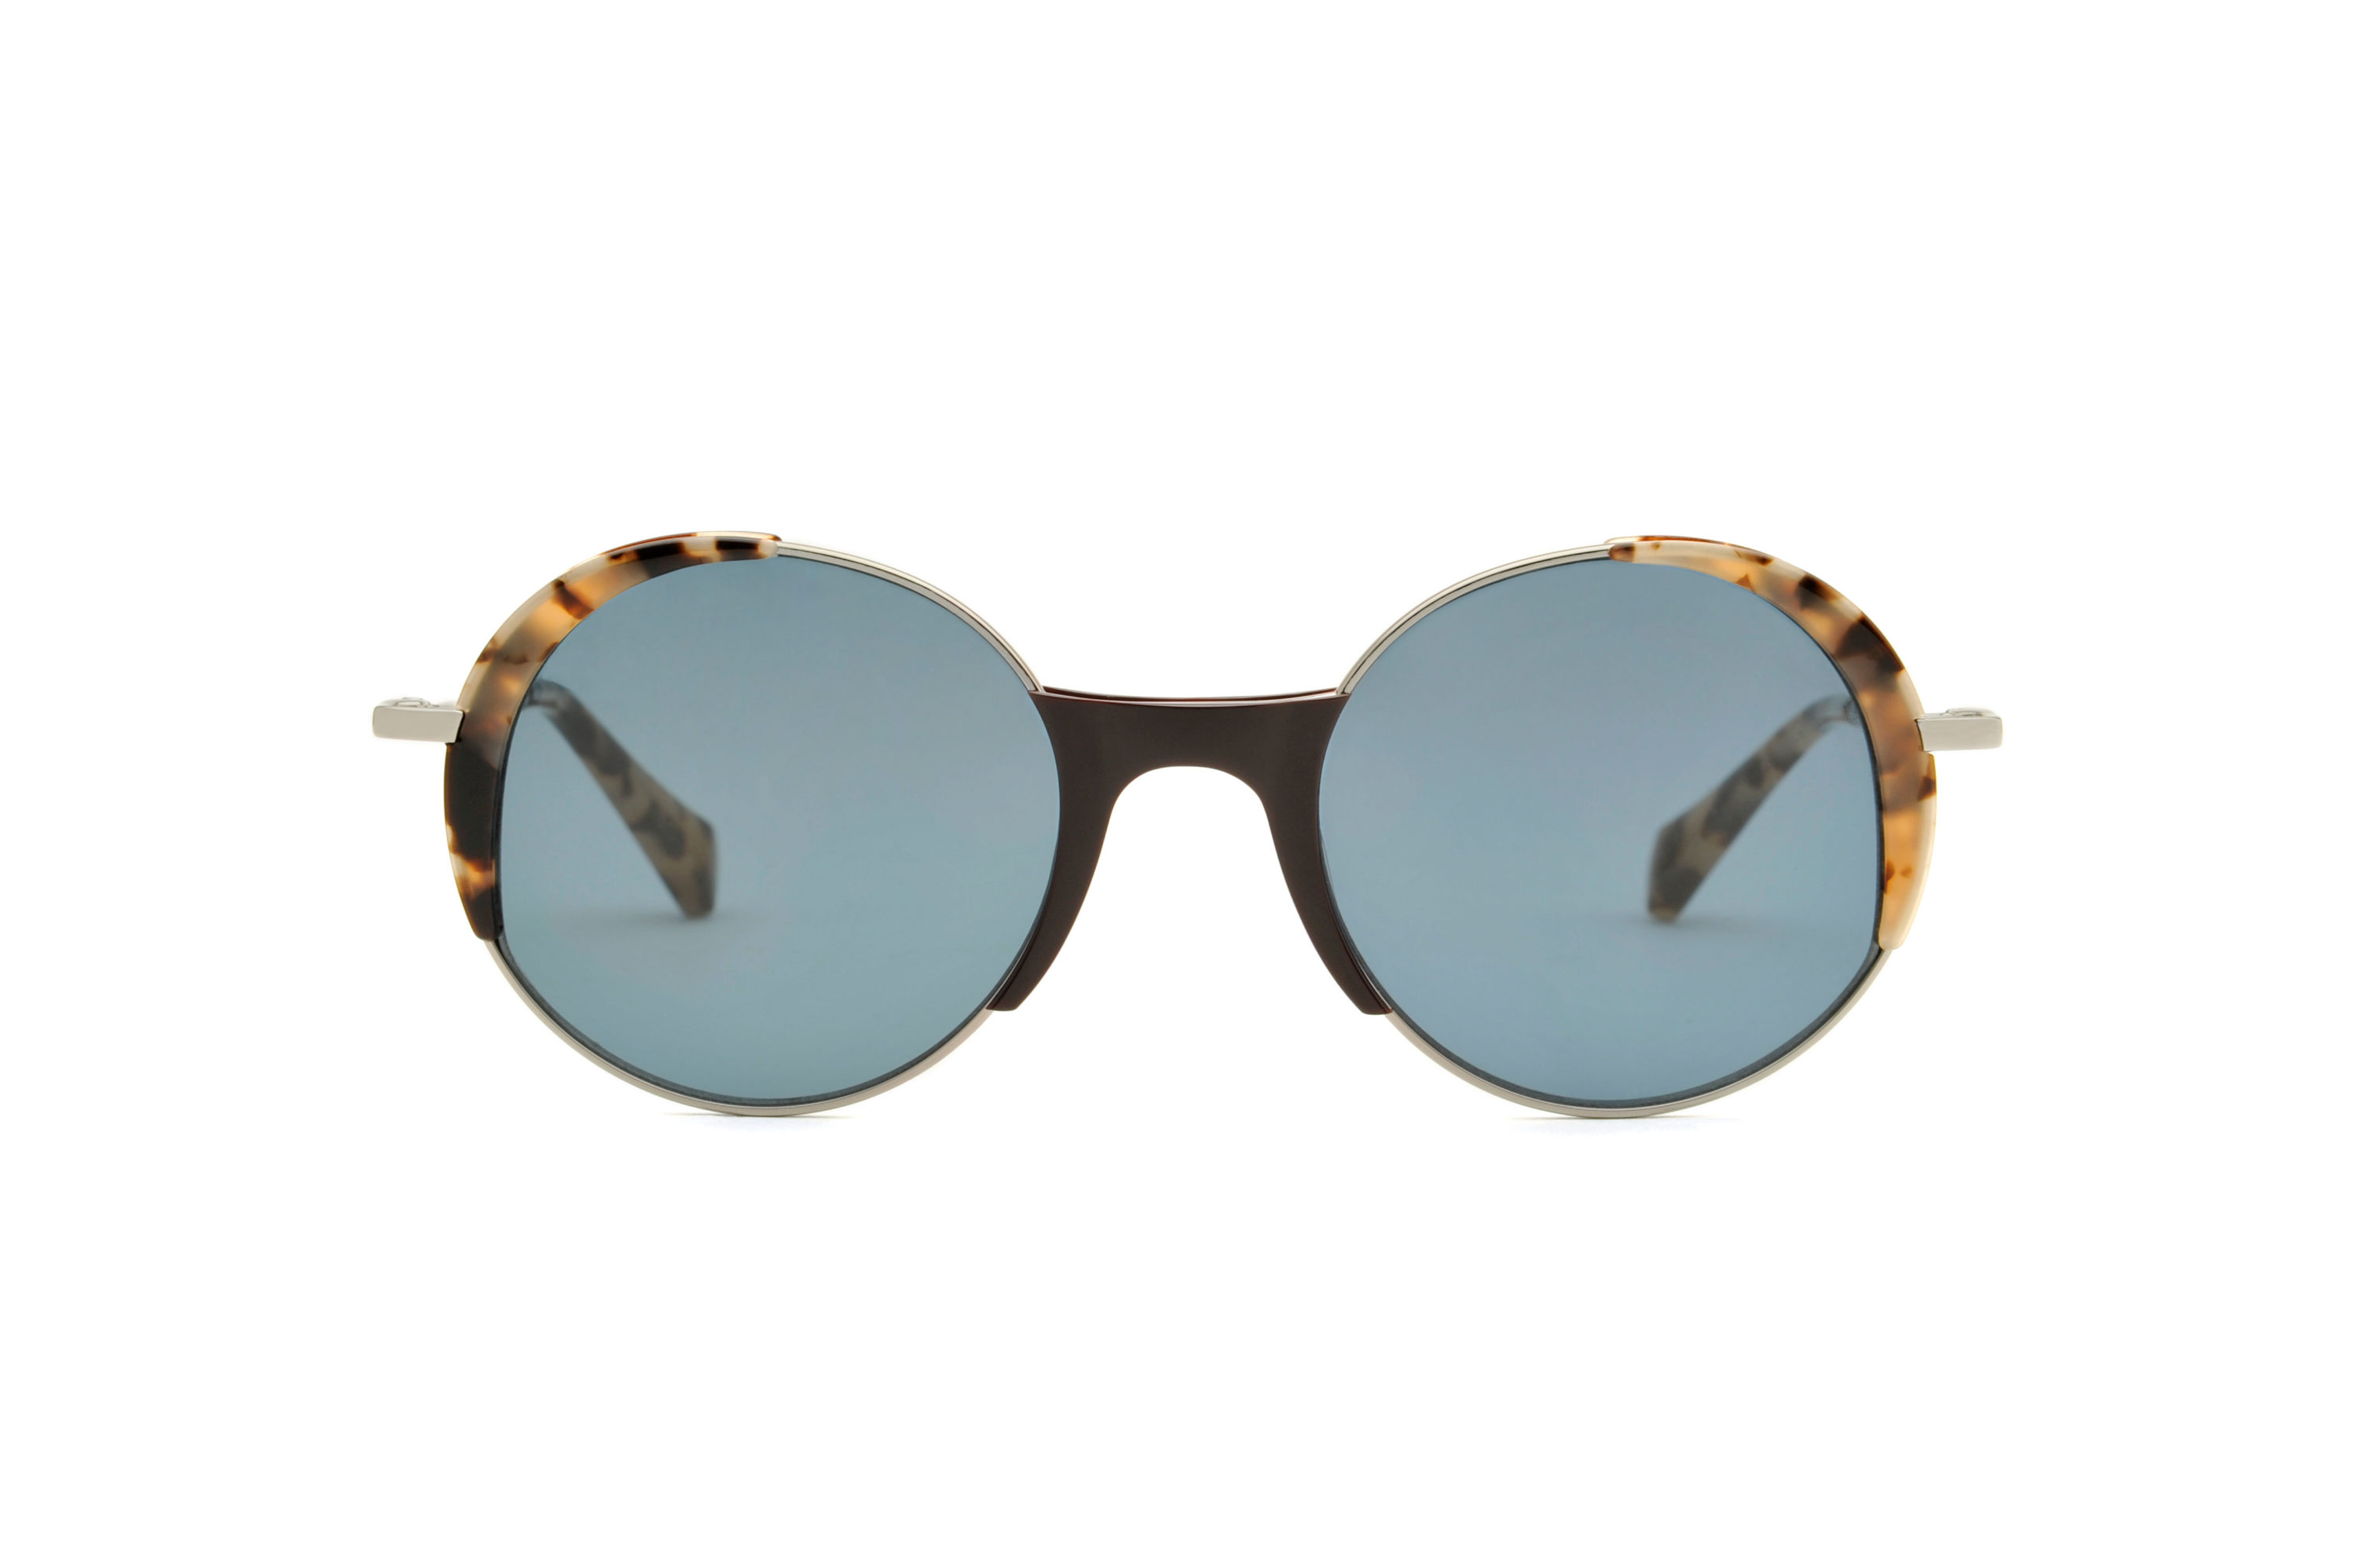 Lena acetate/metal rounded black sunglasses by GIGI Studios